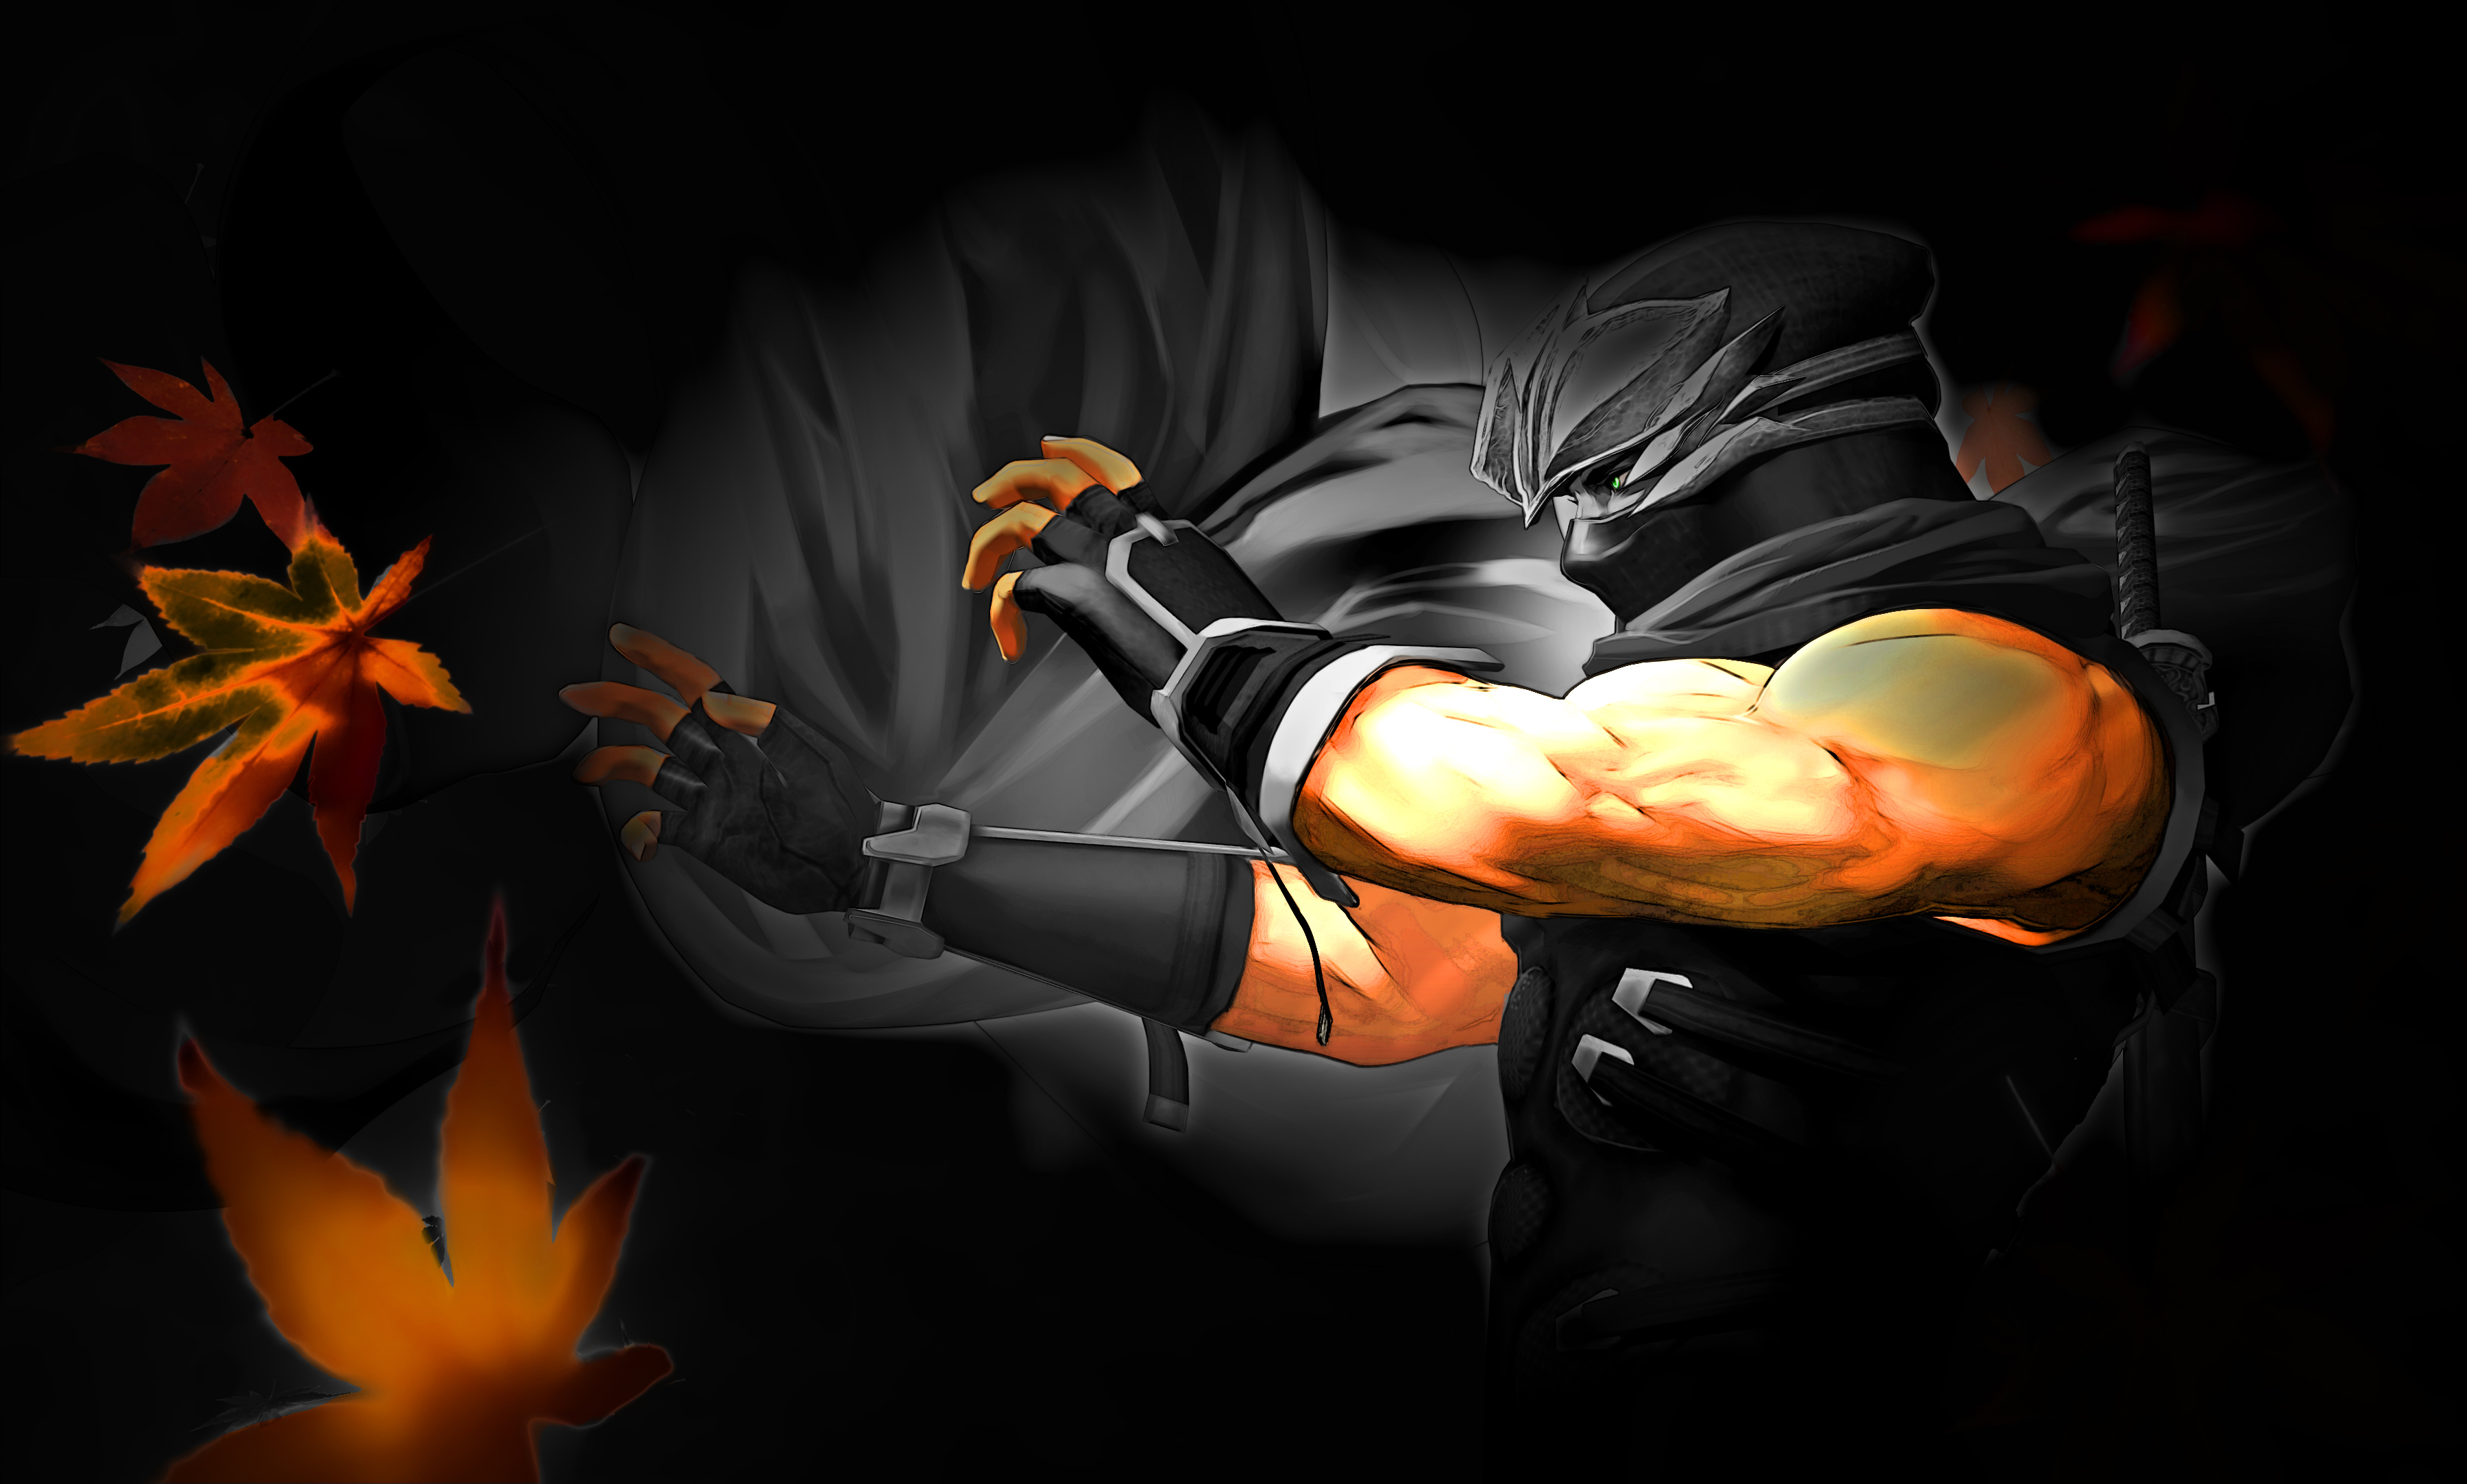 Ryu Hayabusa By DoktorAtlas On DeviantArt